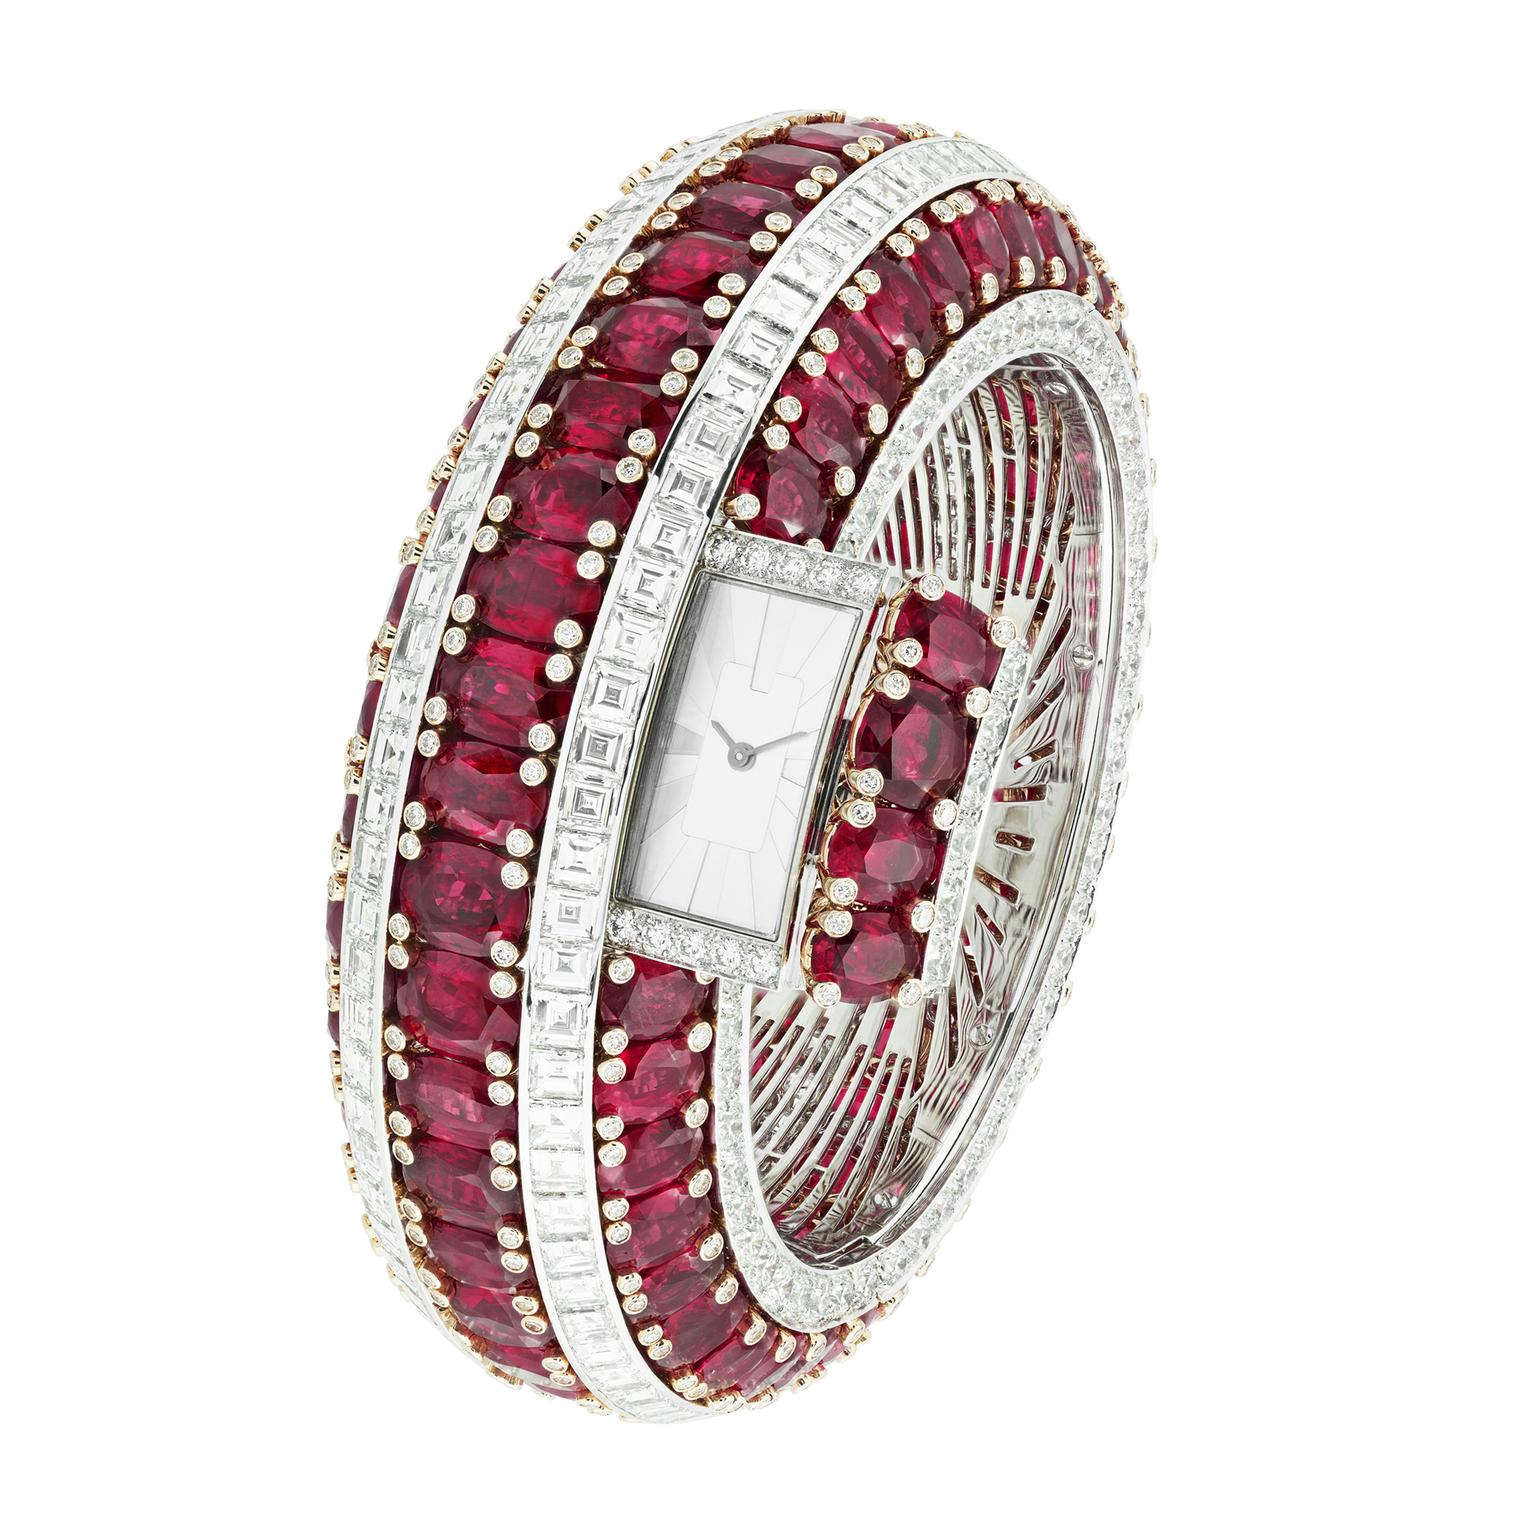 Van Cleef & Arpels Ruby Secret watch